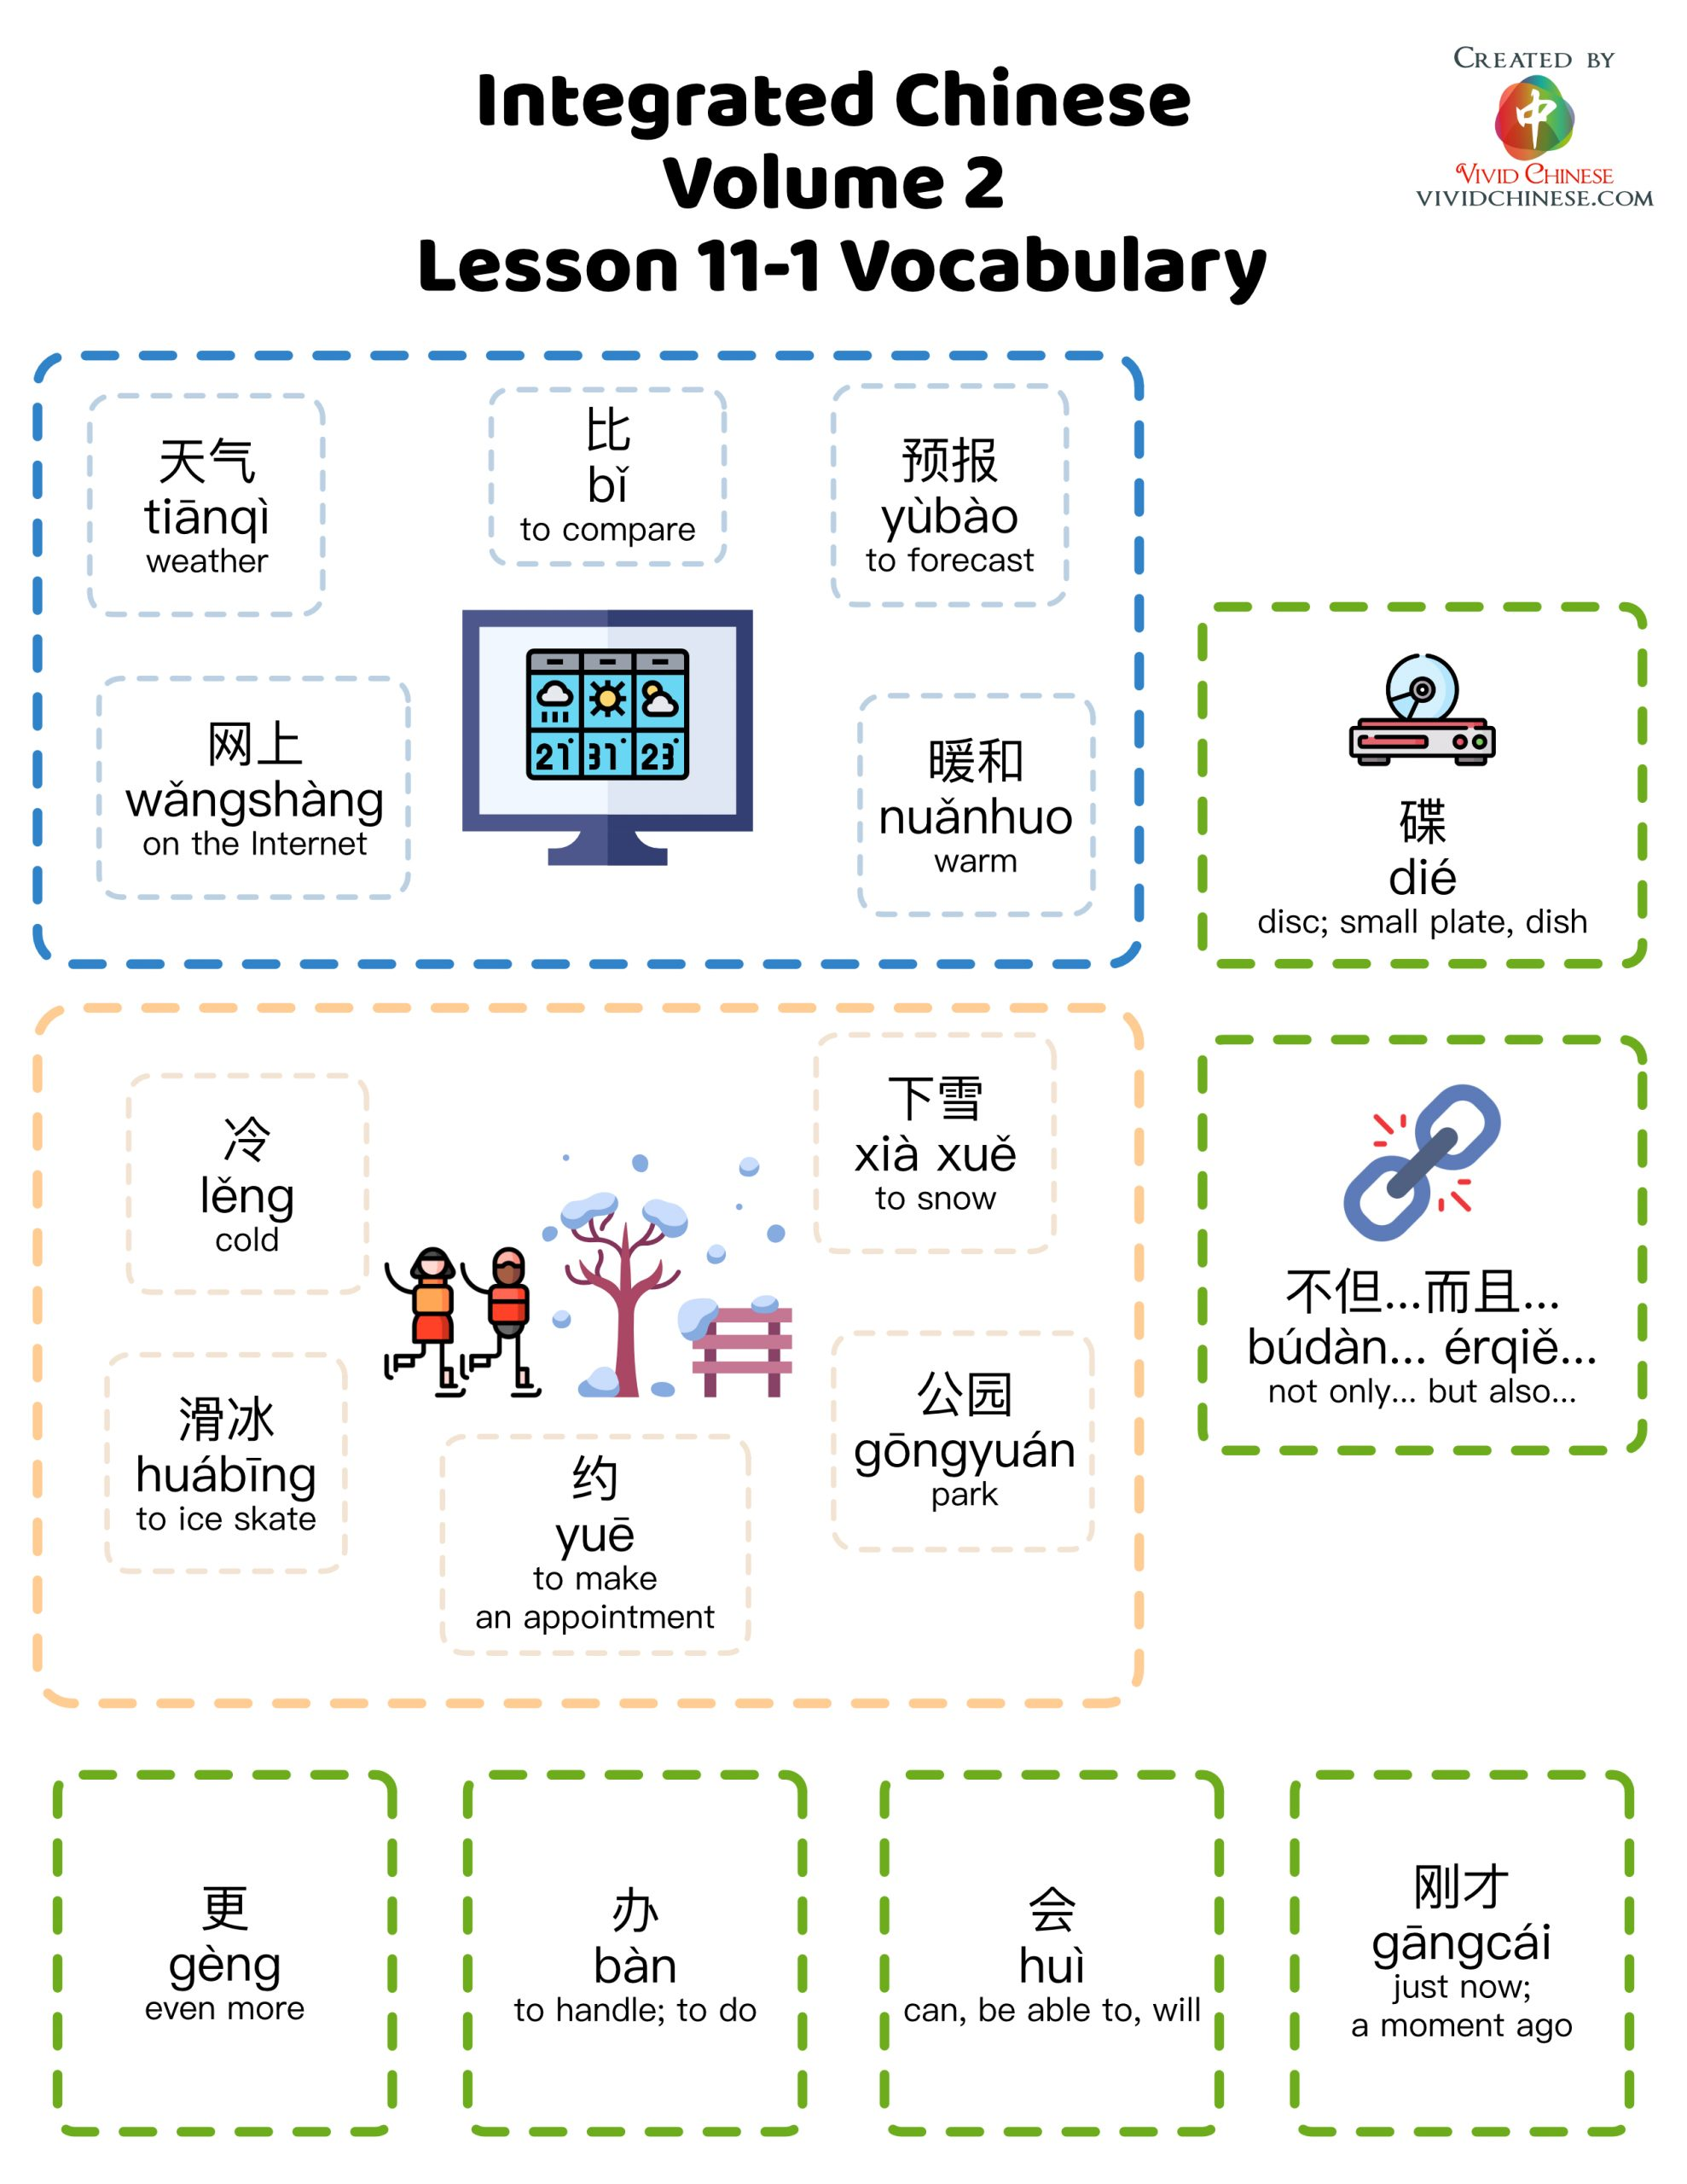 Integrated Chinese V2 L11-1 Vocabulary Infographic